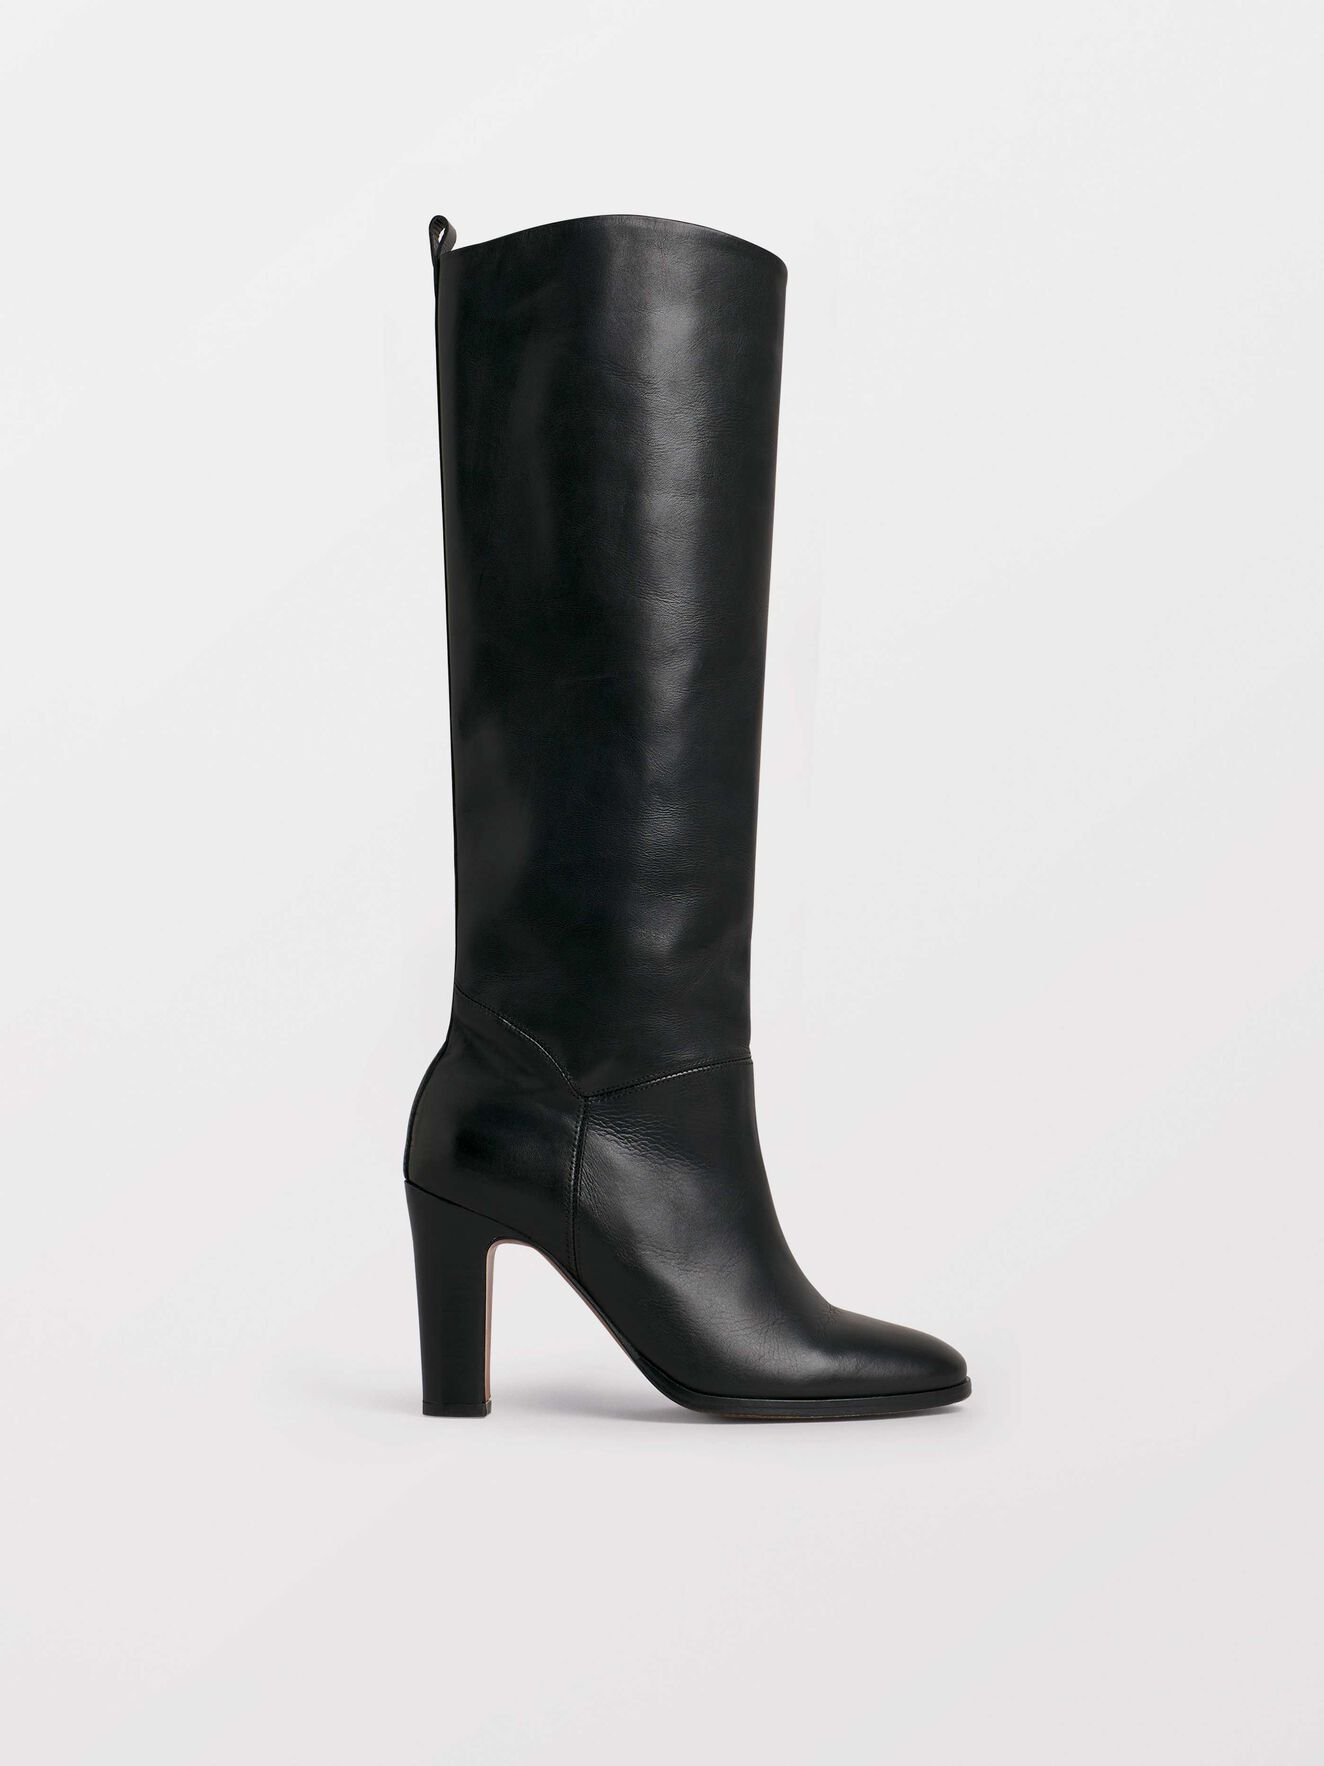 Triconta Boots in Black from Tiger of Sweden